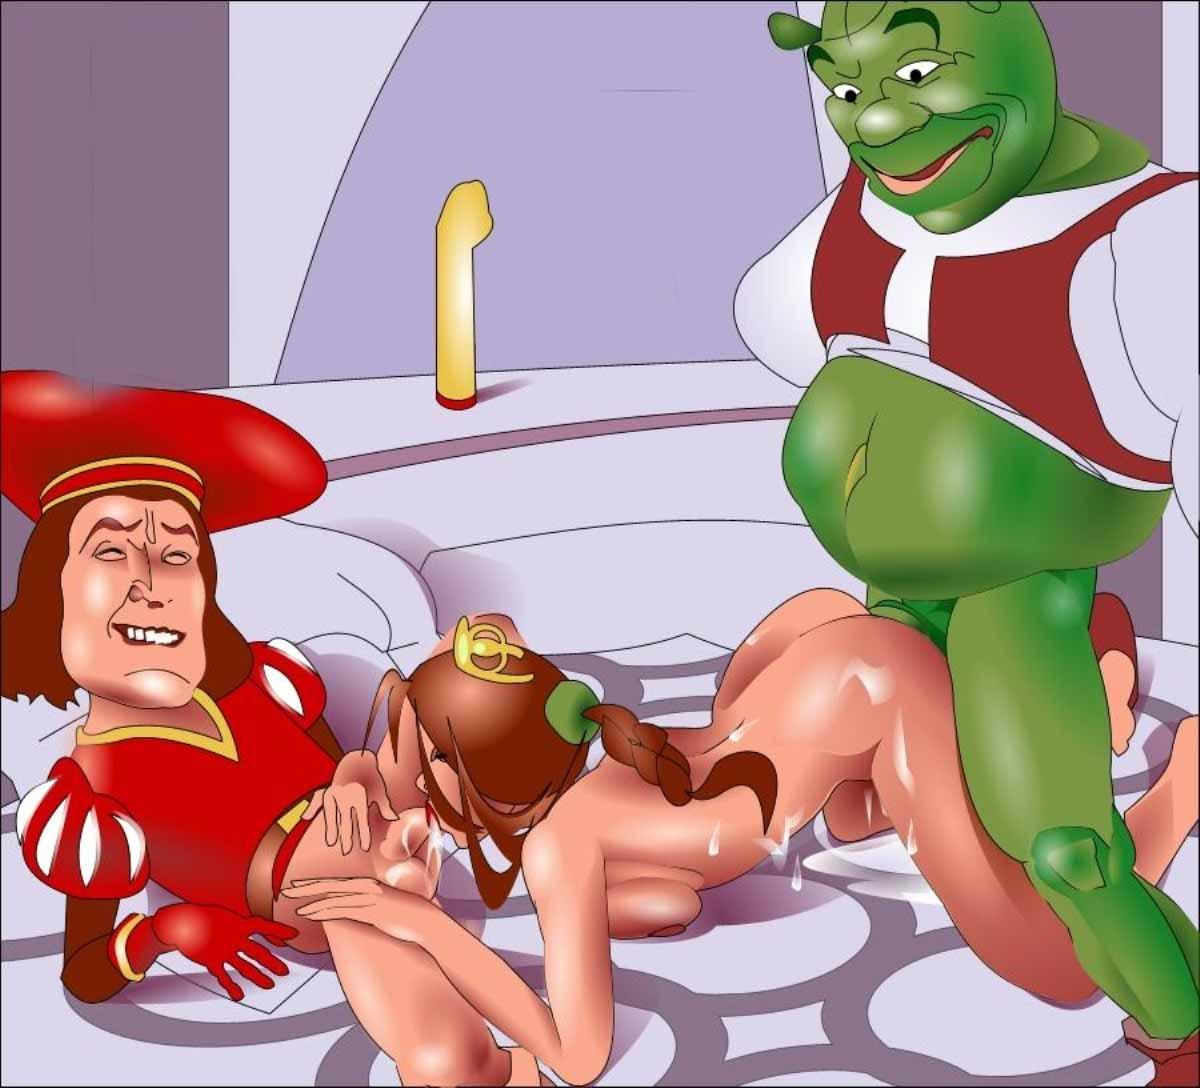 Shrek cartoon sex images hentai thumbs